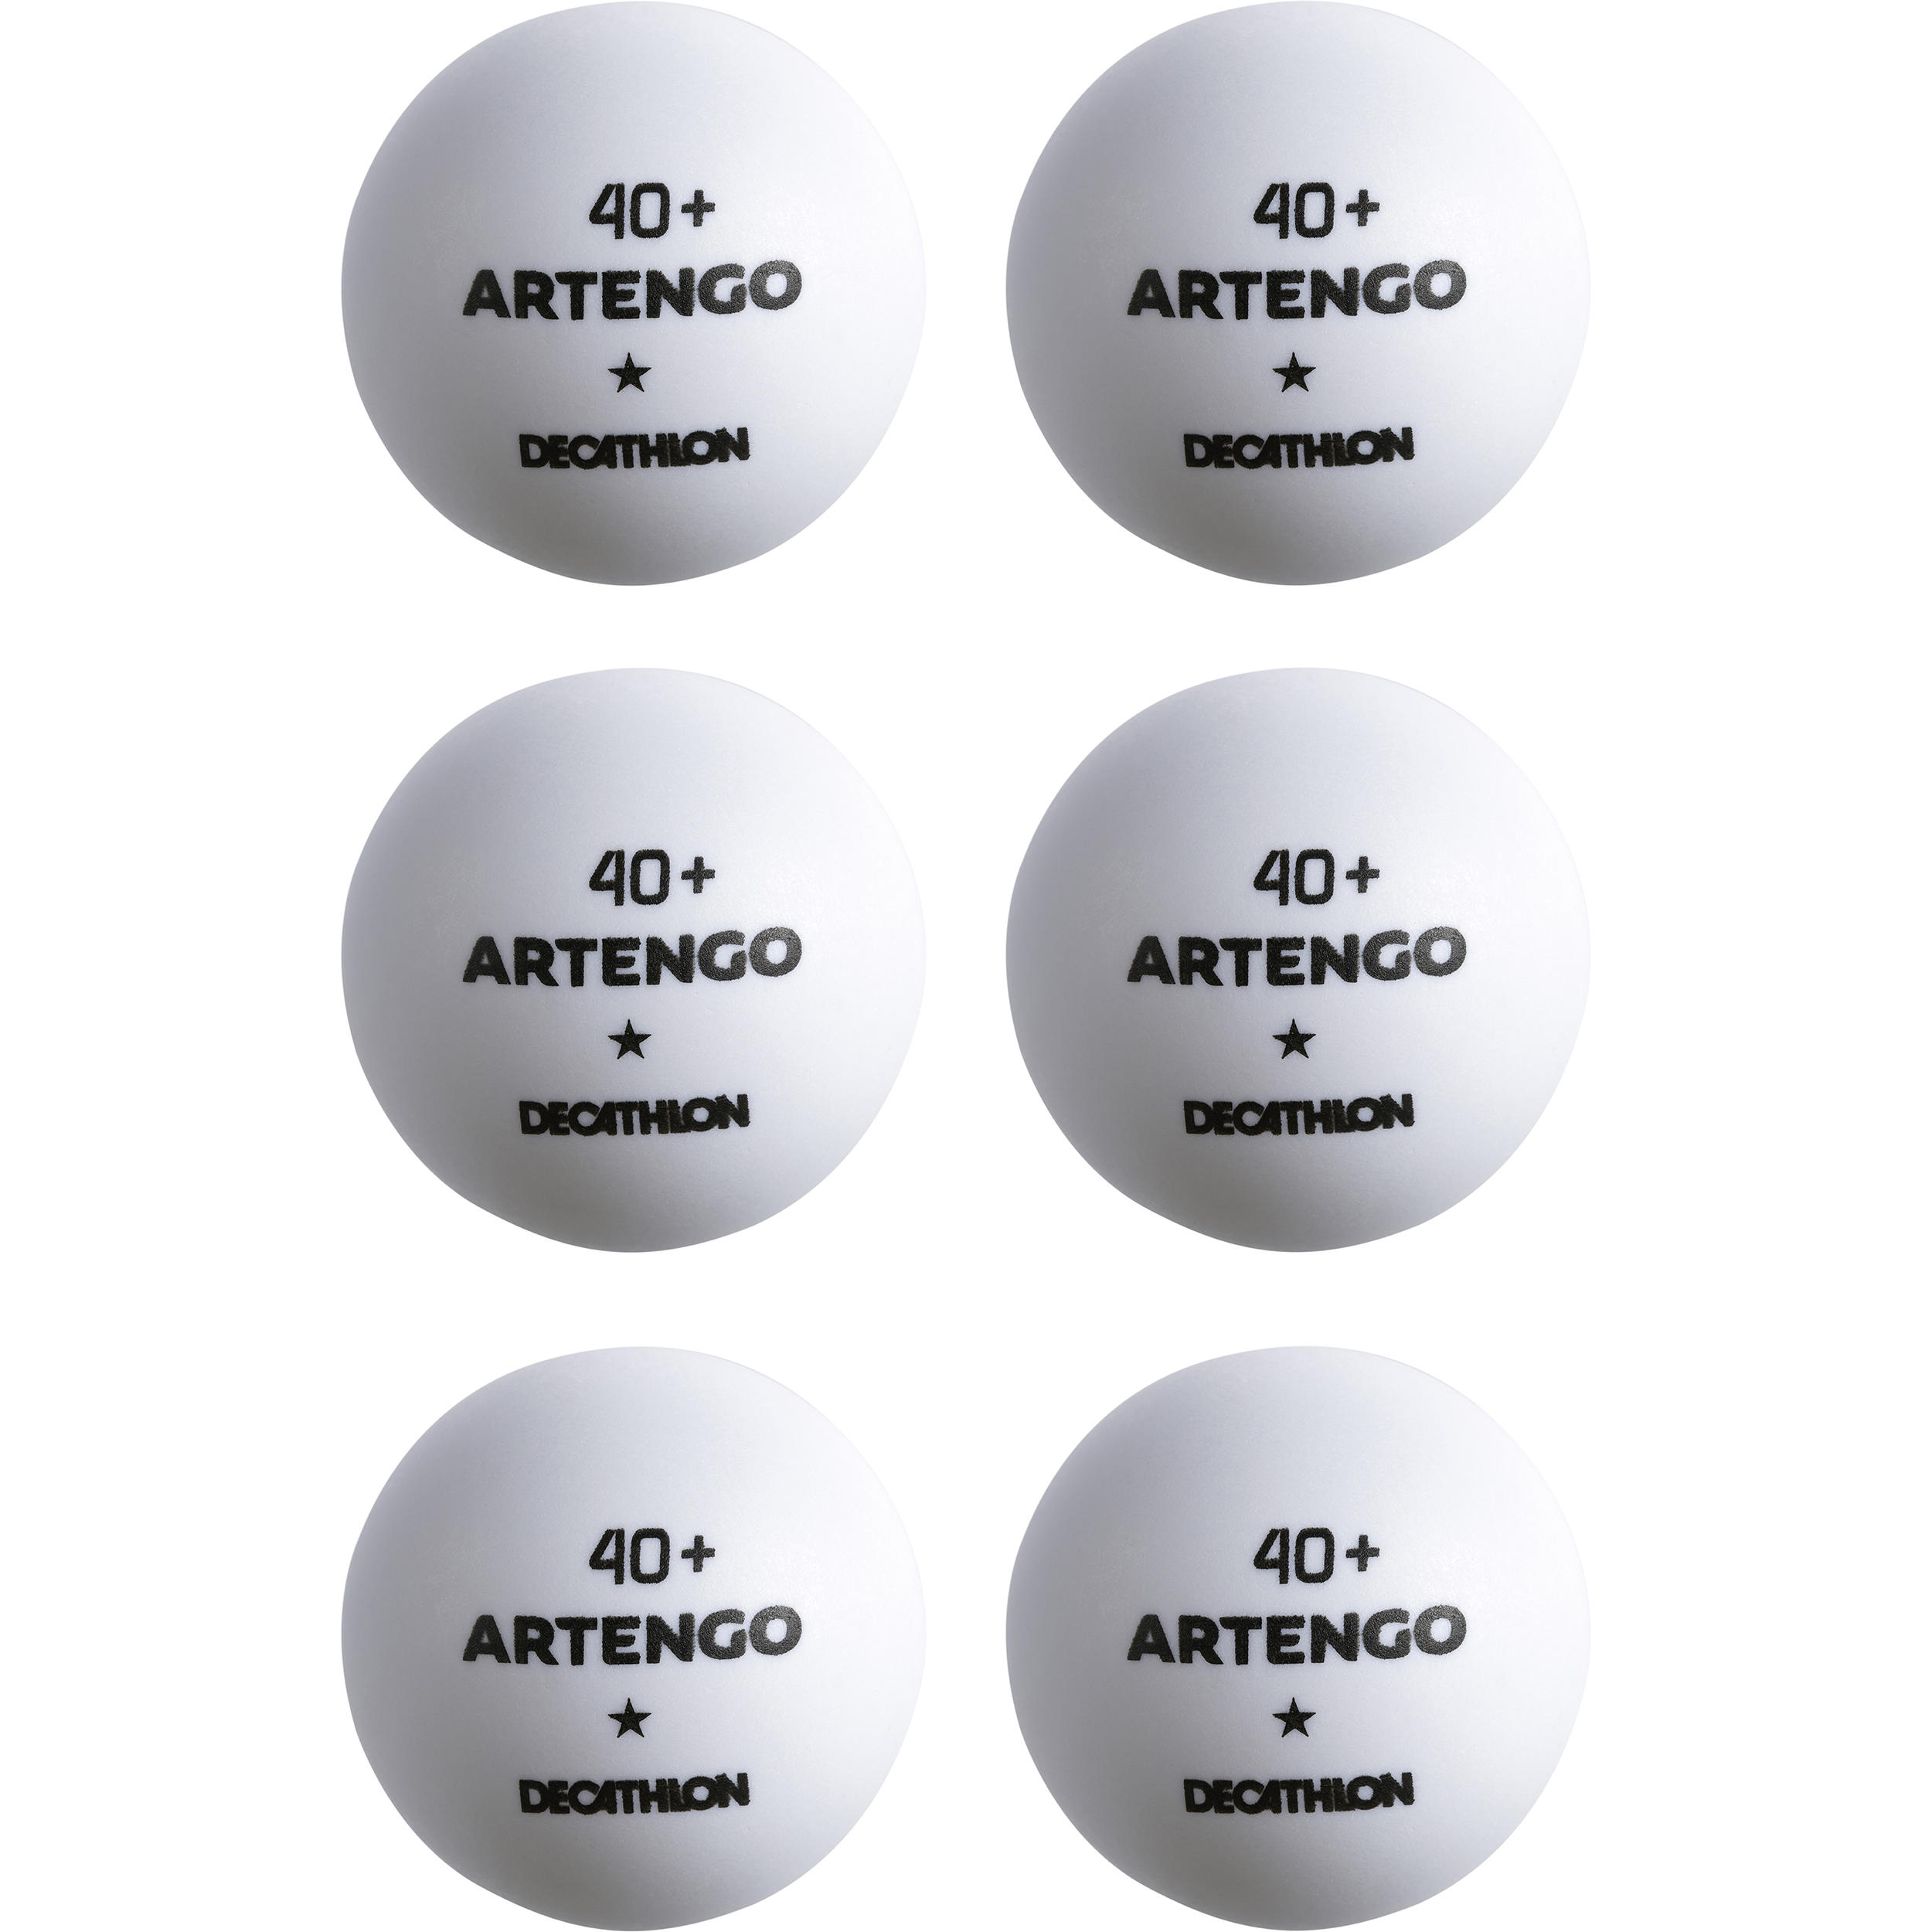 TTB 100 1* 4+ Table Tennis Balls 6-Pack - White